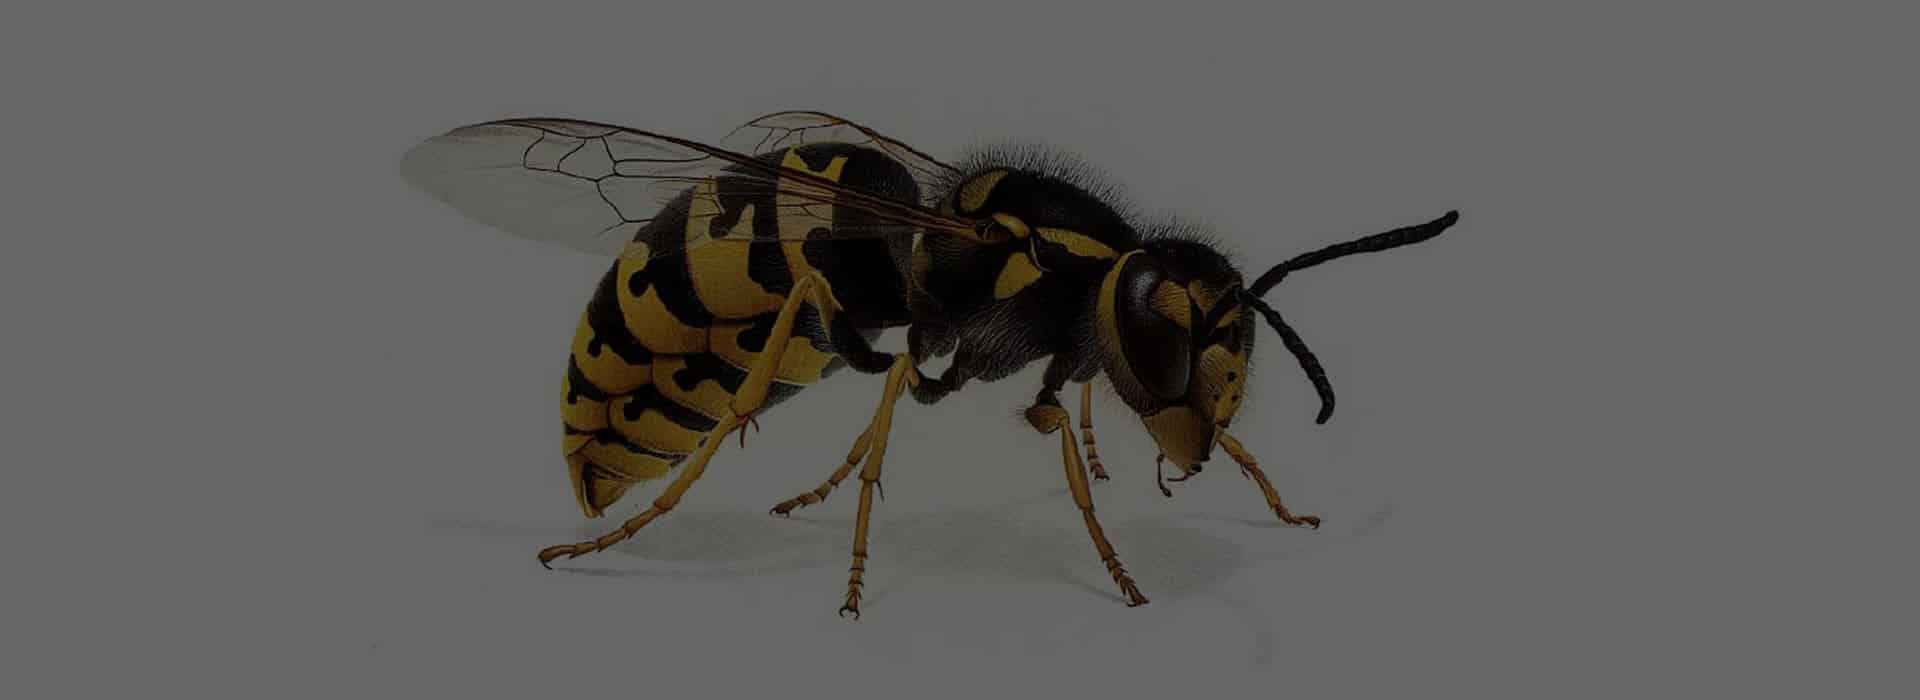 Pest-Control-Wigan-Wasp-Nest-Removal